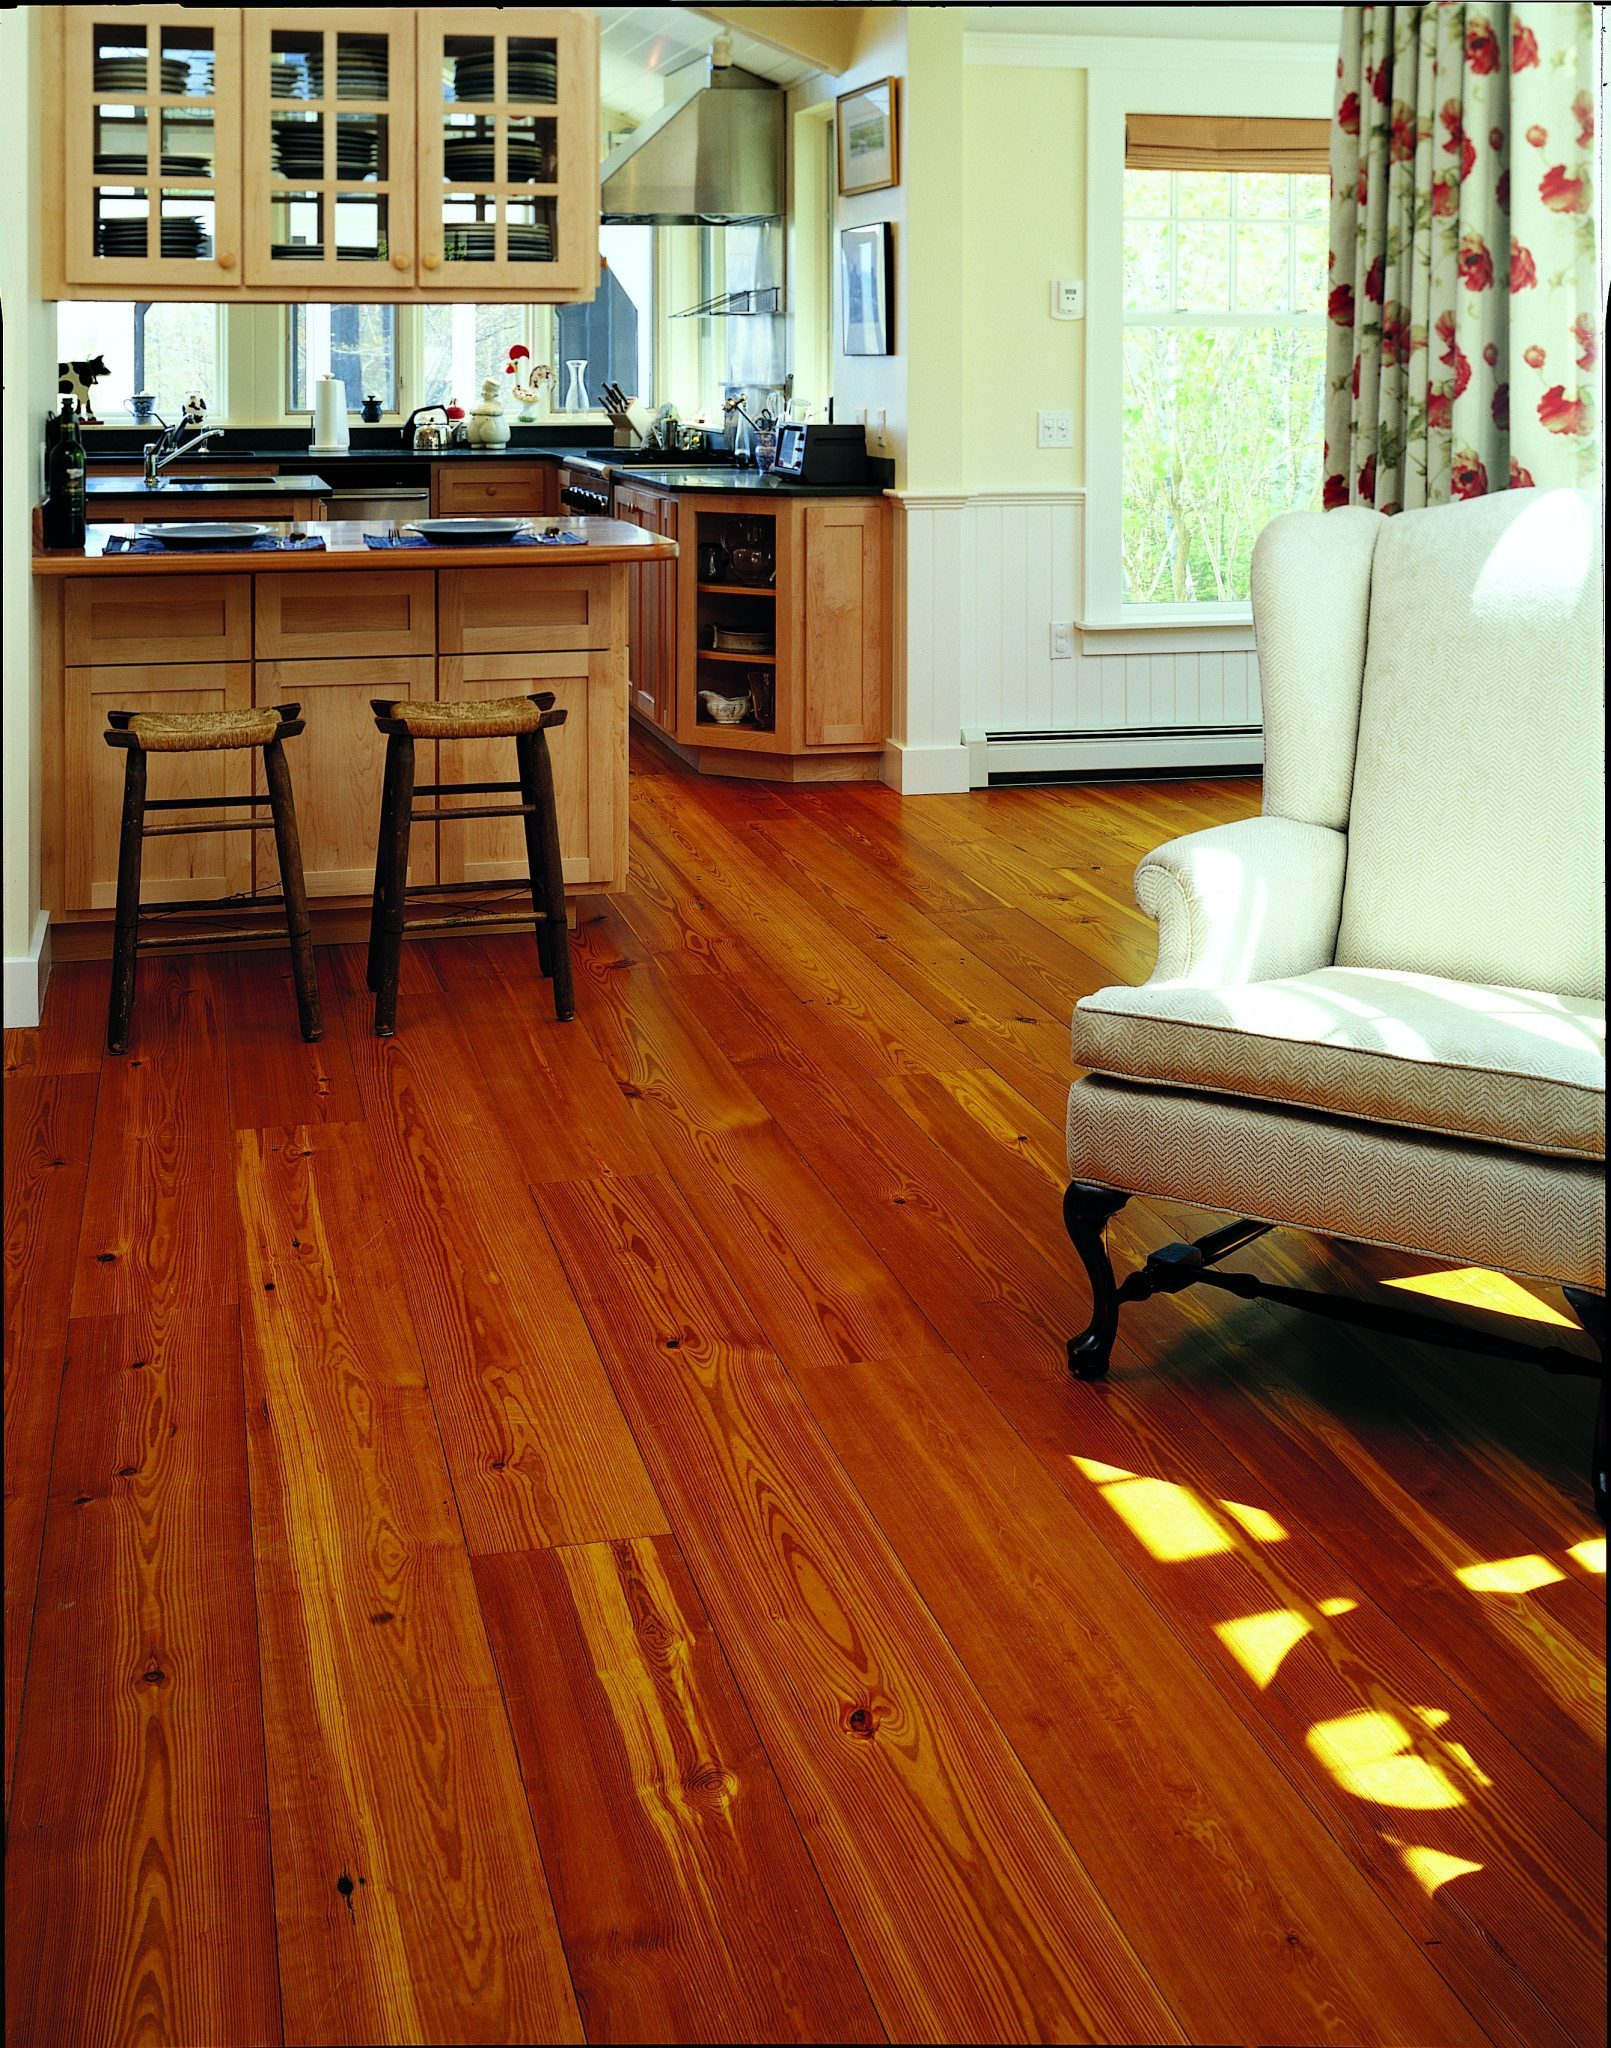 Reclaimed Heart Pine Floors in Kitchen and Sitting Area